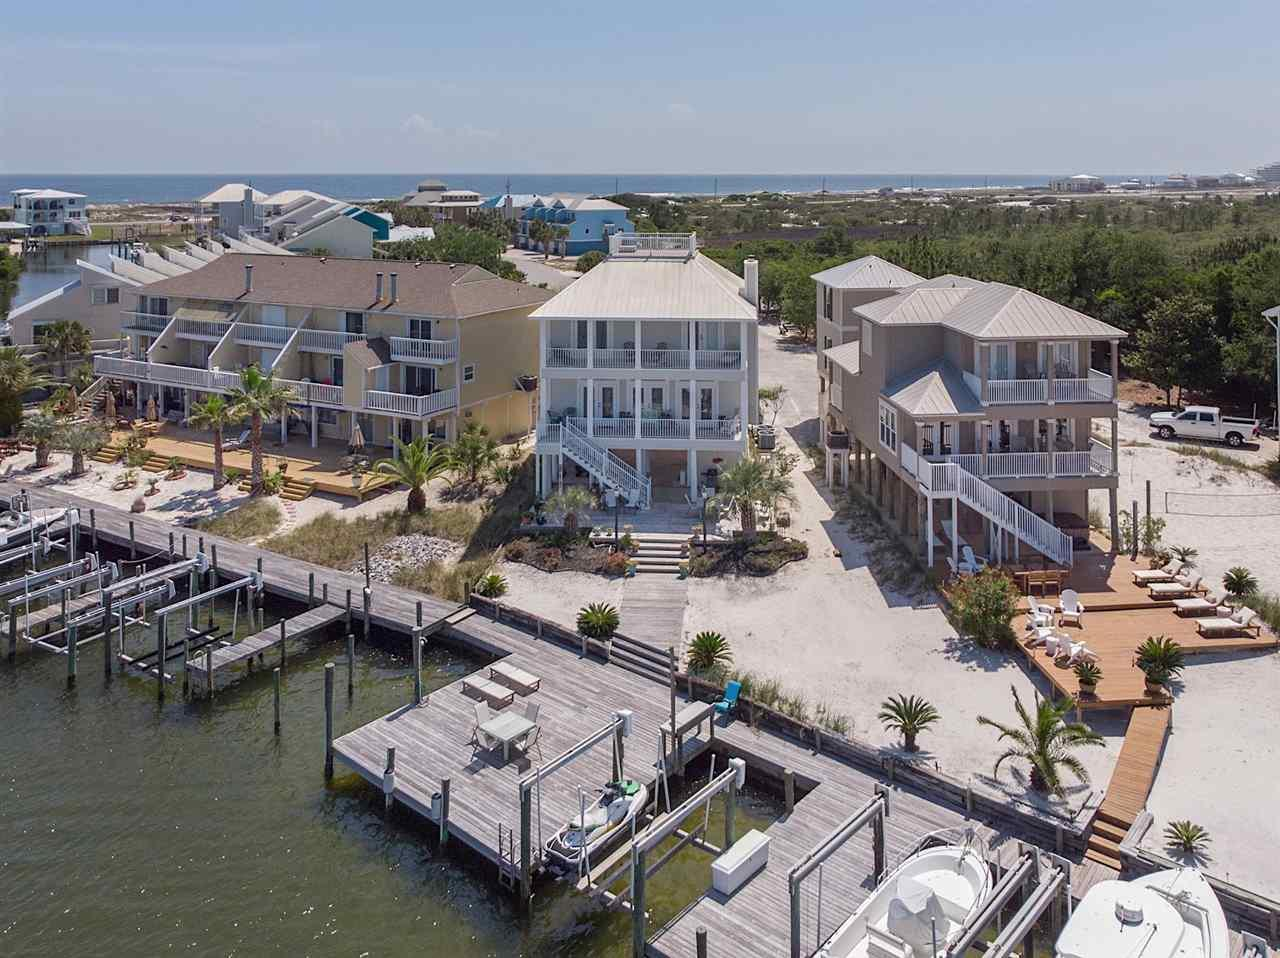 7188 SHARP REEF PERDIDO KEY, FL 32507 553653